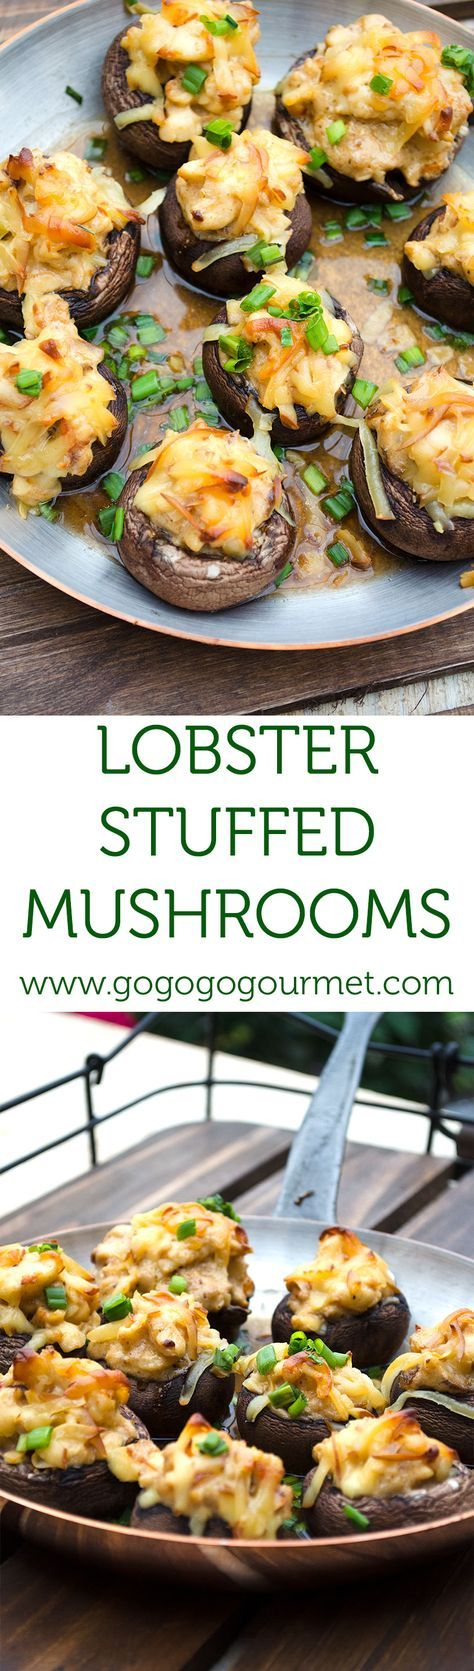 Chunks of buttery lobster and smoked gouda stuffed inside mushrooms...heaven on earth:)